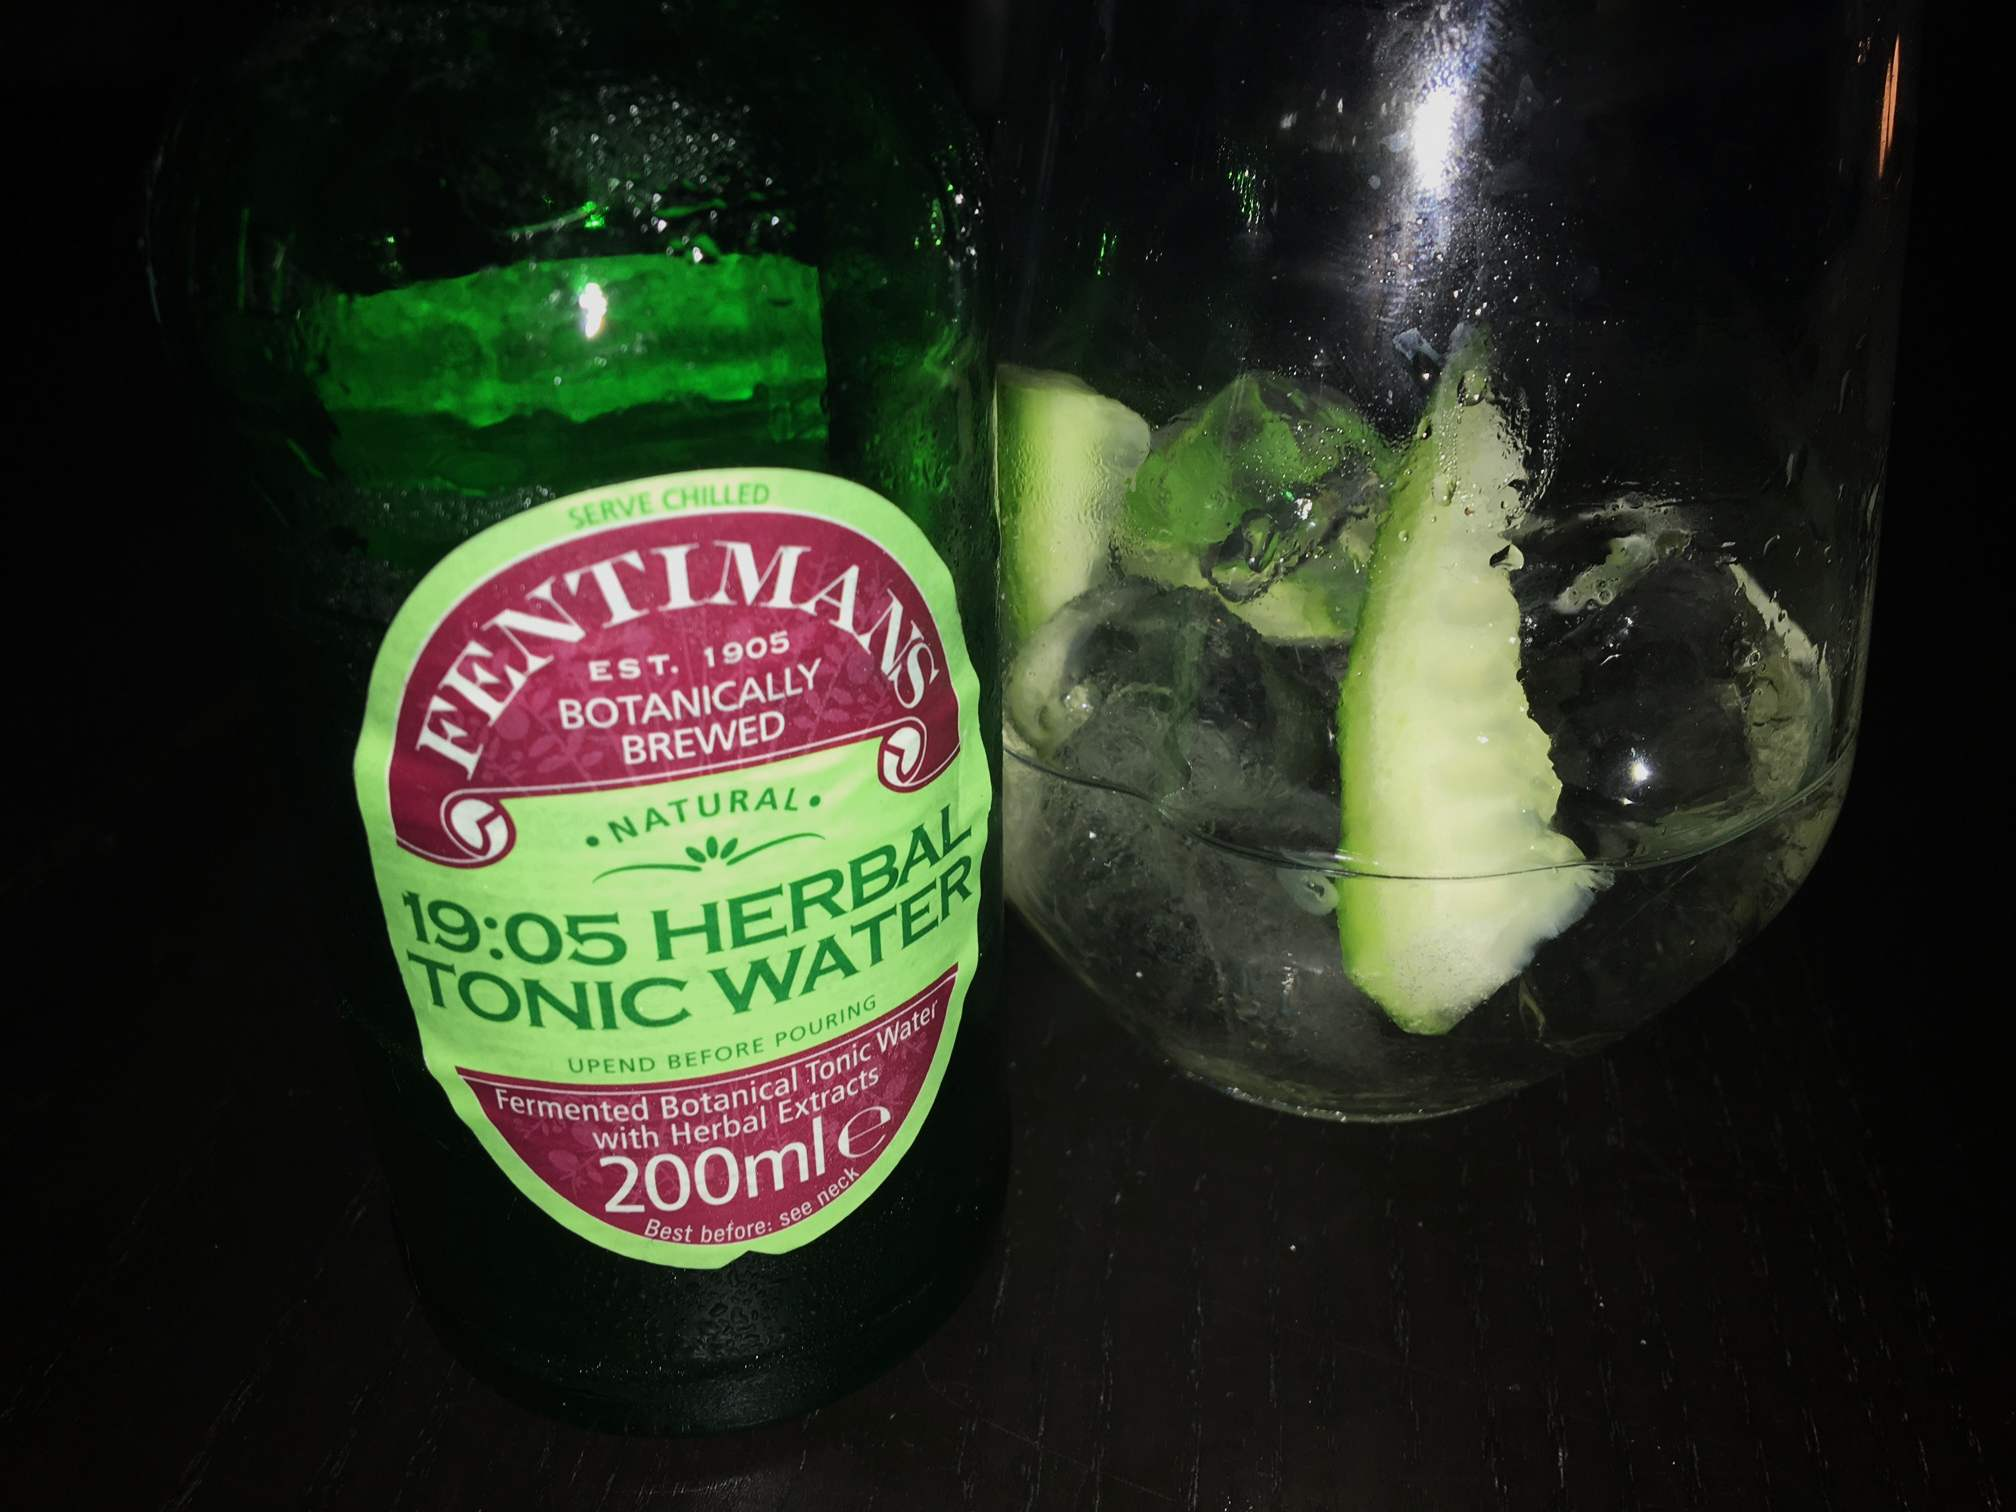 Fentimans 19:05 Herbal Tonic Water im Gin Tonic mit Gurke.